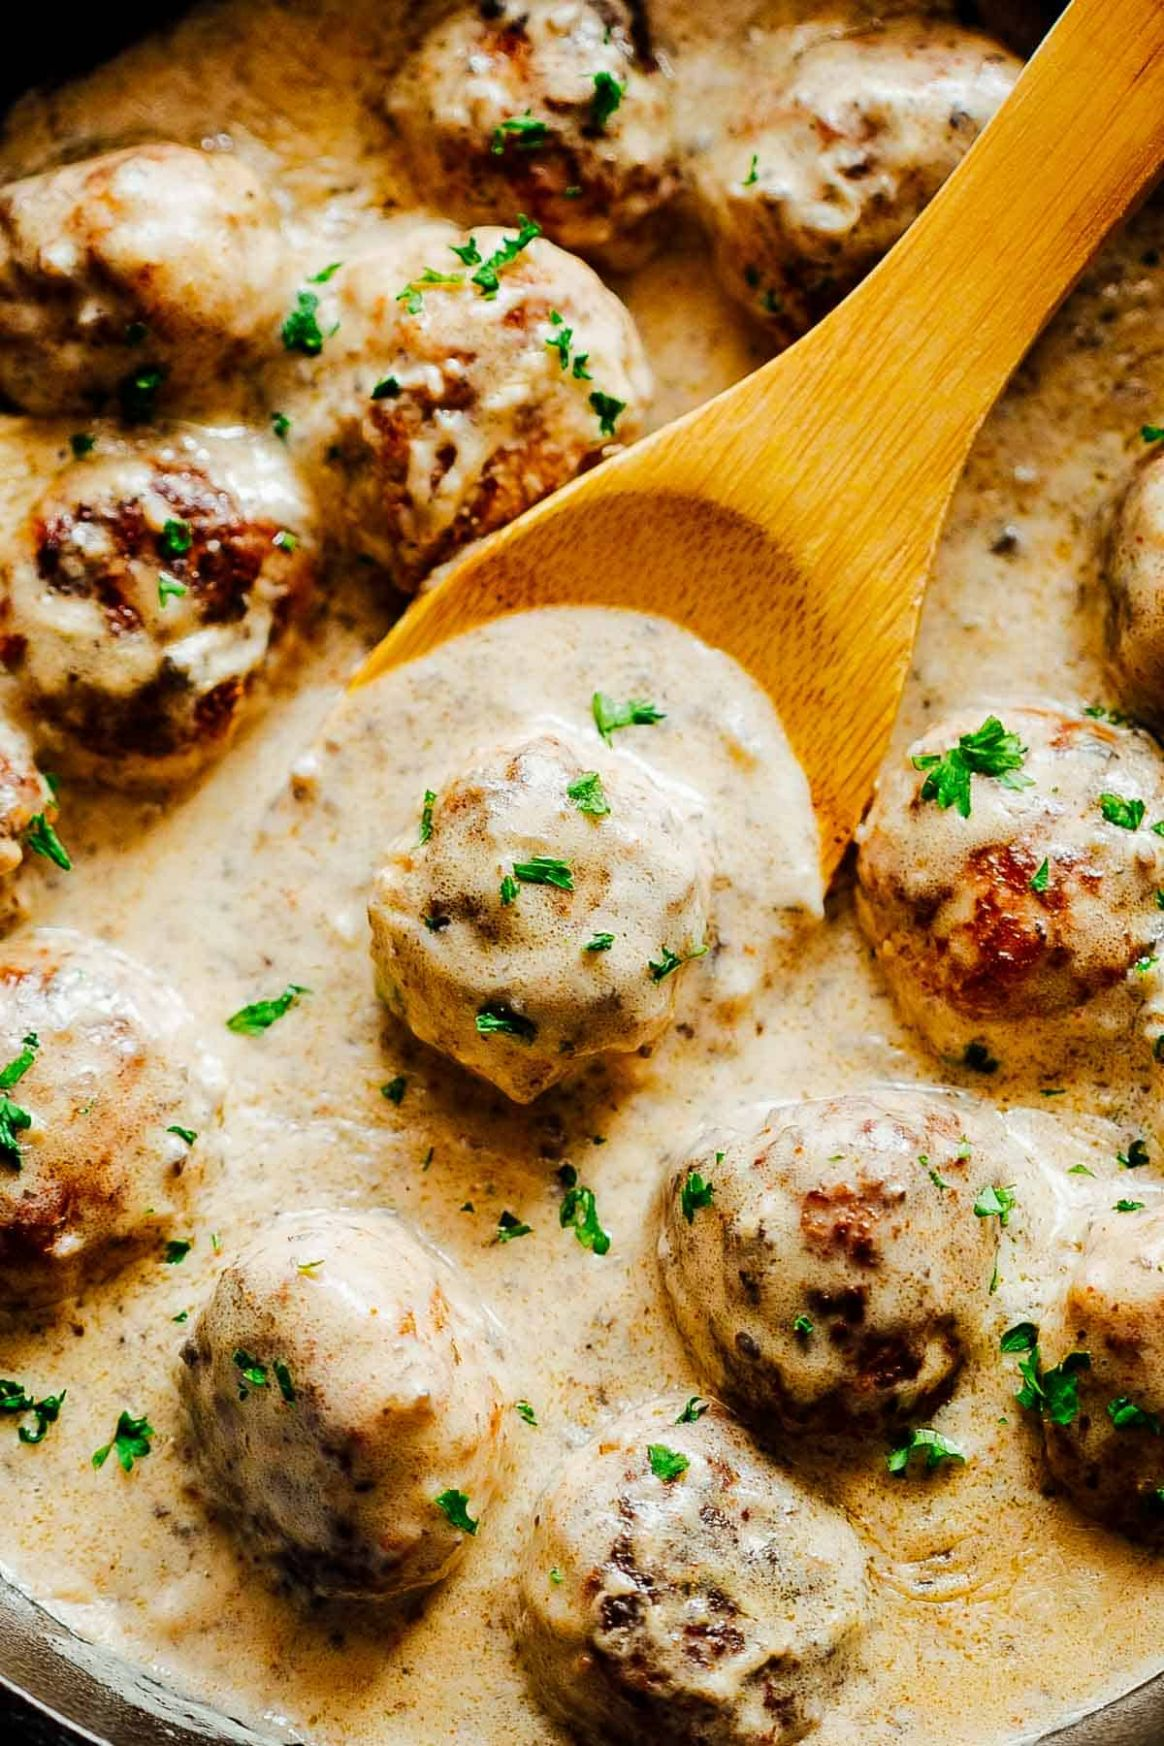 Creamy Chicken Meatballs in Mushroom Sauce - Ready in 10 minutes! - Recipes Chicken Ground Meat